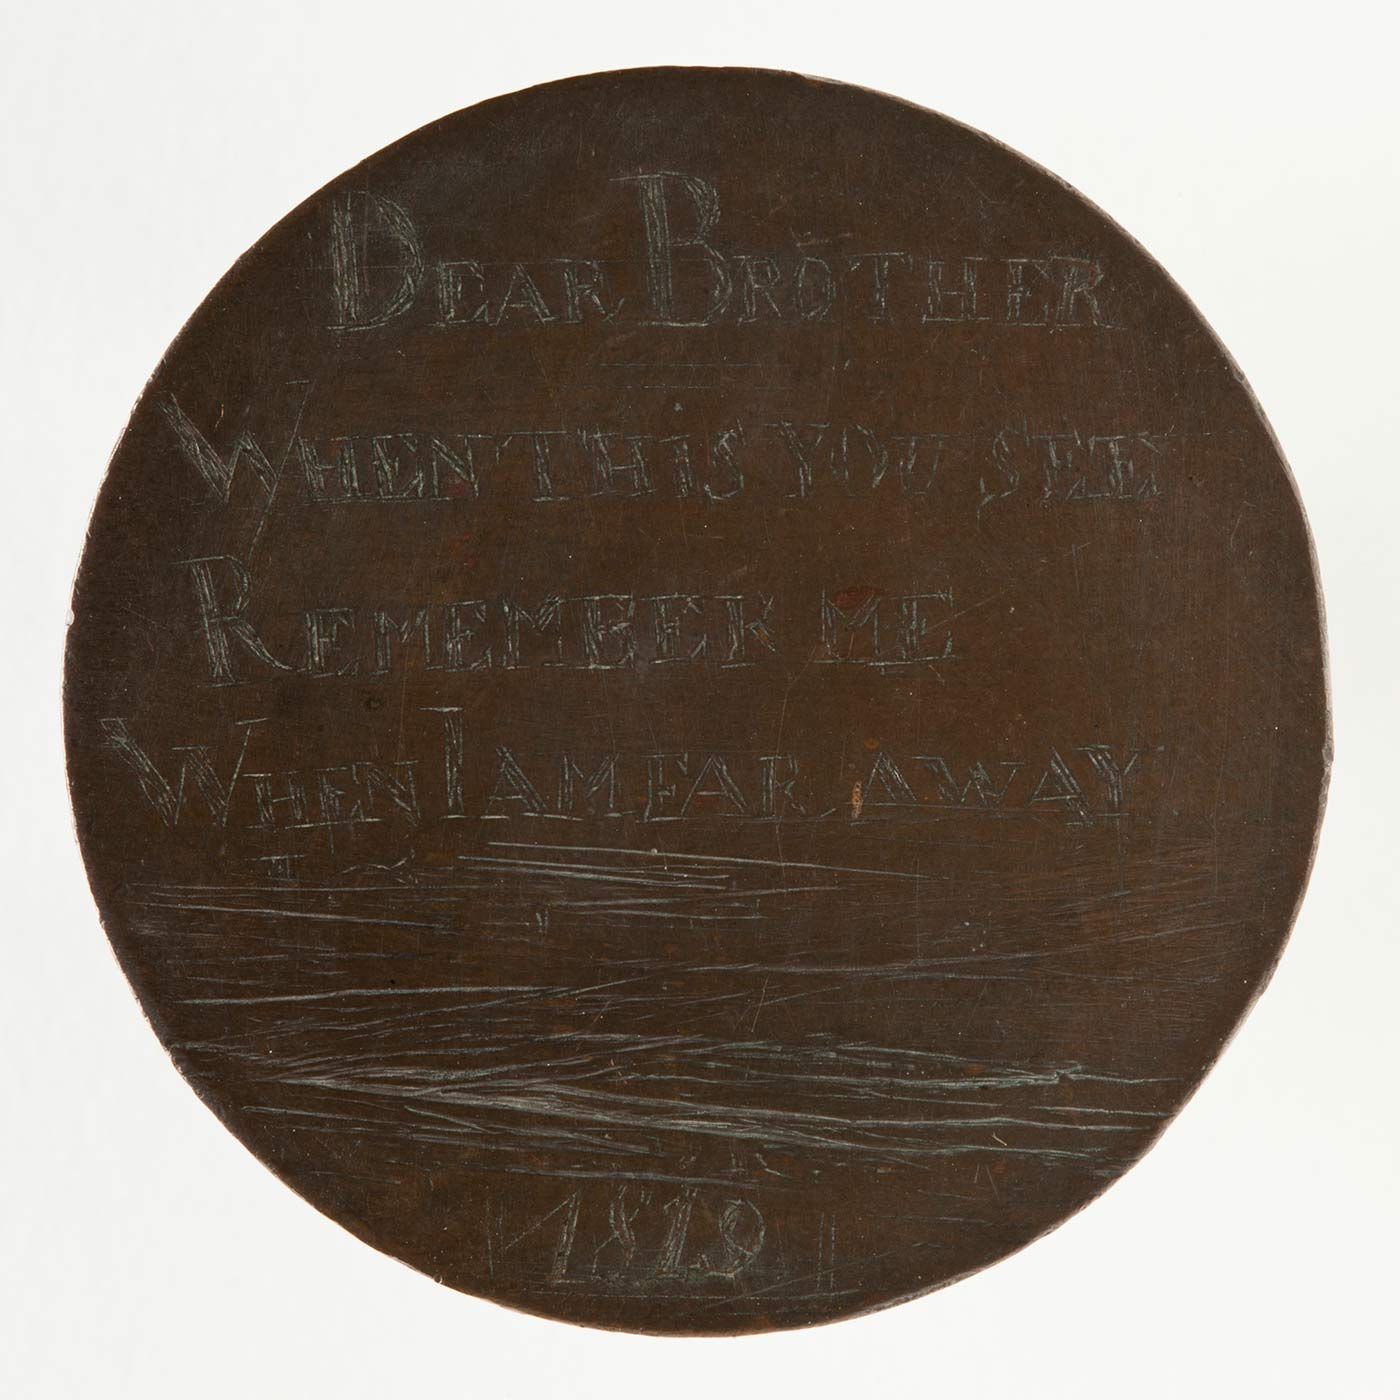 A convict love token, made up of a coin, engraved on one side. The engraved side features the text 'DEAR BROTHER / WHEN THIS YOU SEE / REMEMBER ME / WHEN I AM FAR AWAY / 1819'.